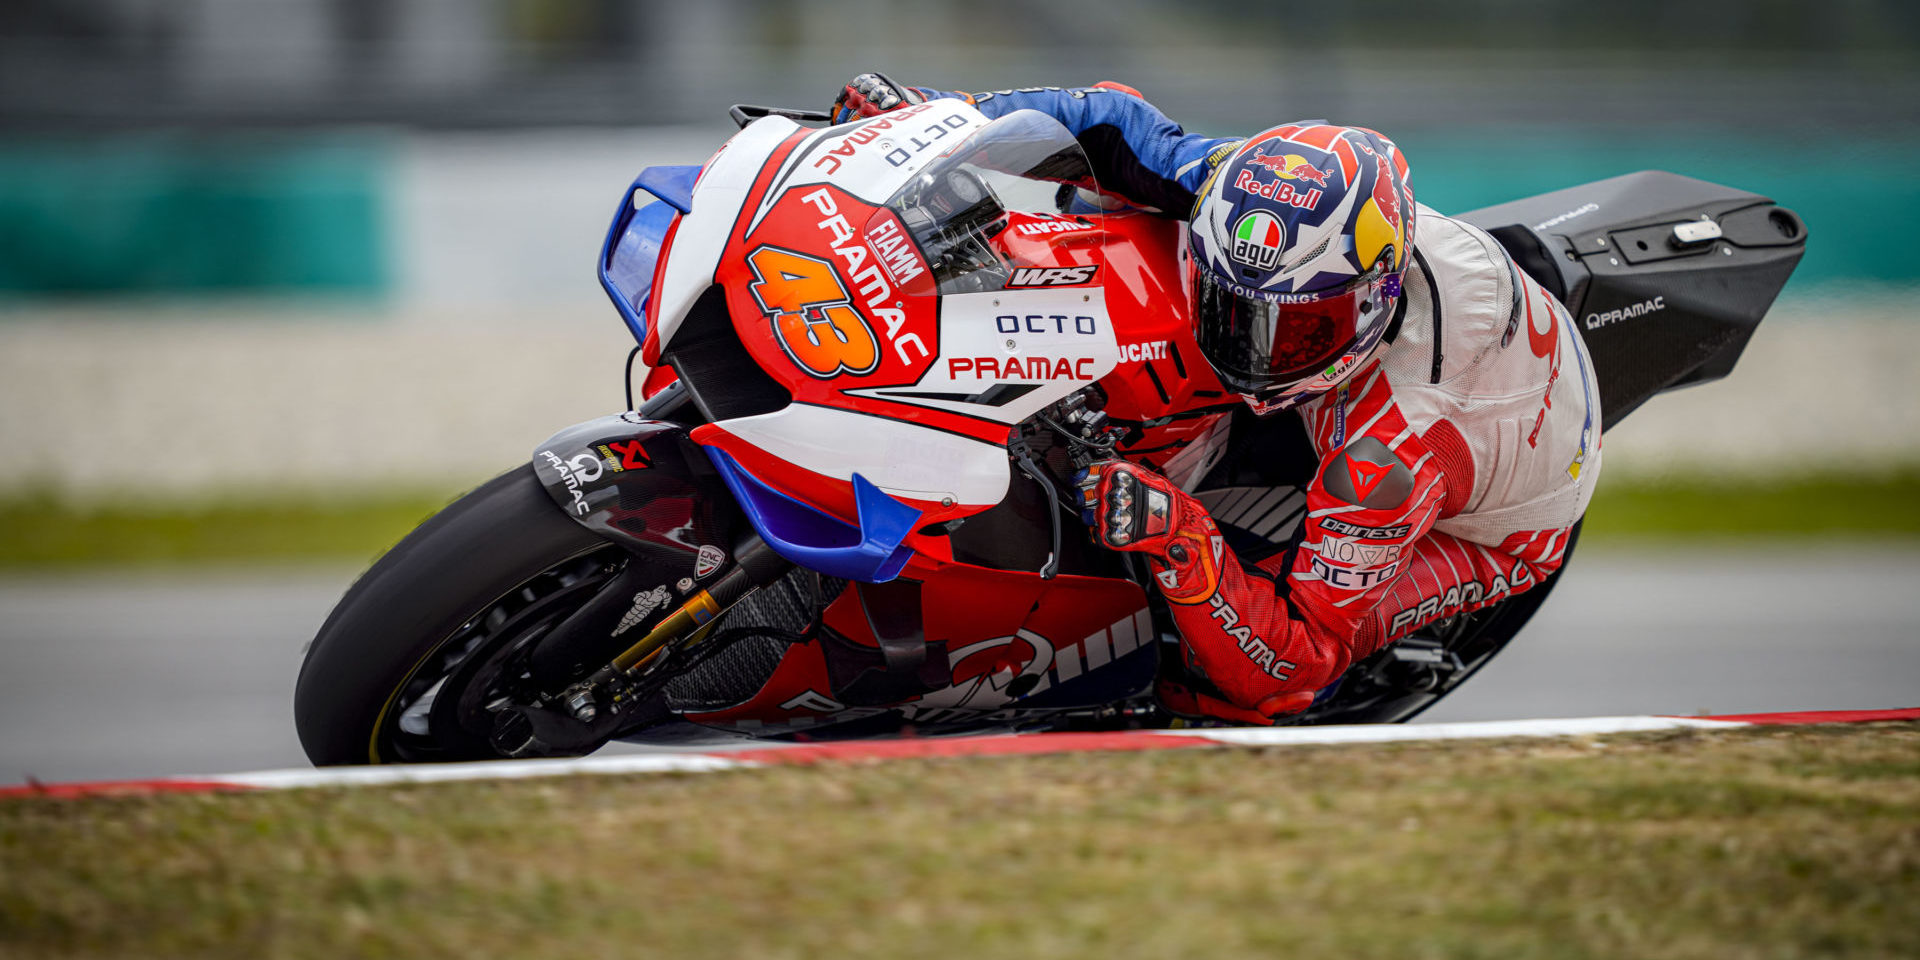 Jack Miller (43), seen here testing at Sepang in February 2020, rode a Ducati Panigale V4 R recently at Catalunya. Photo courtesy Pramac Racing.